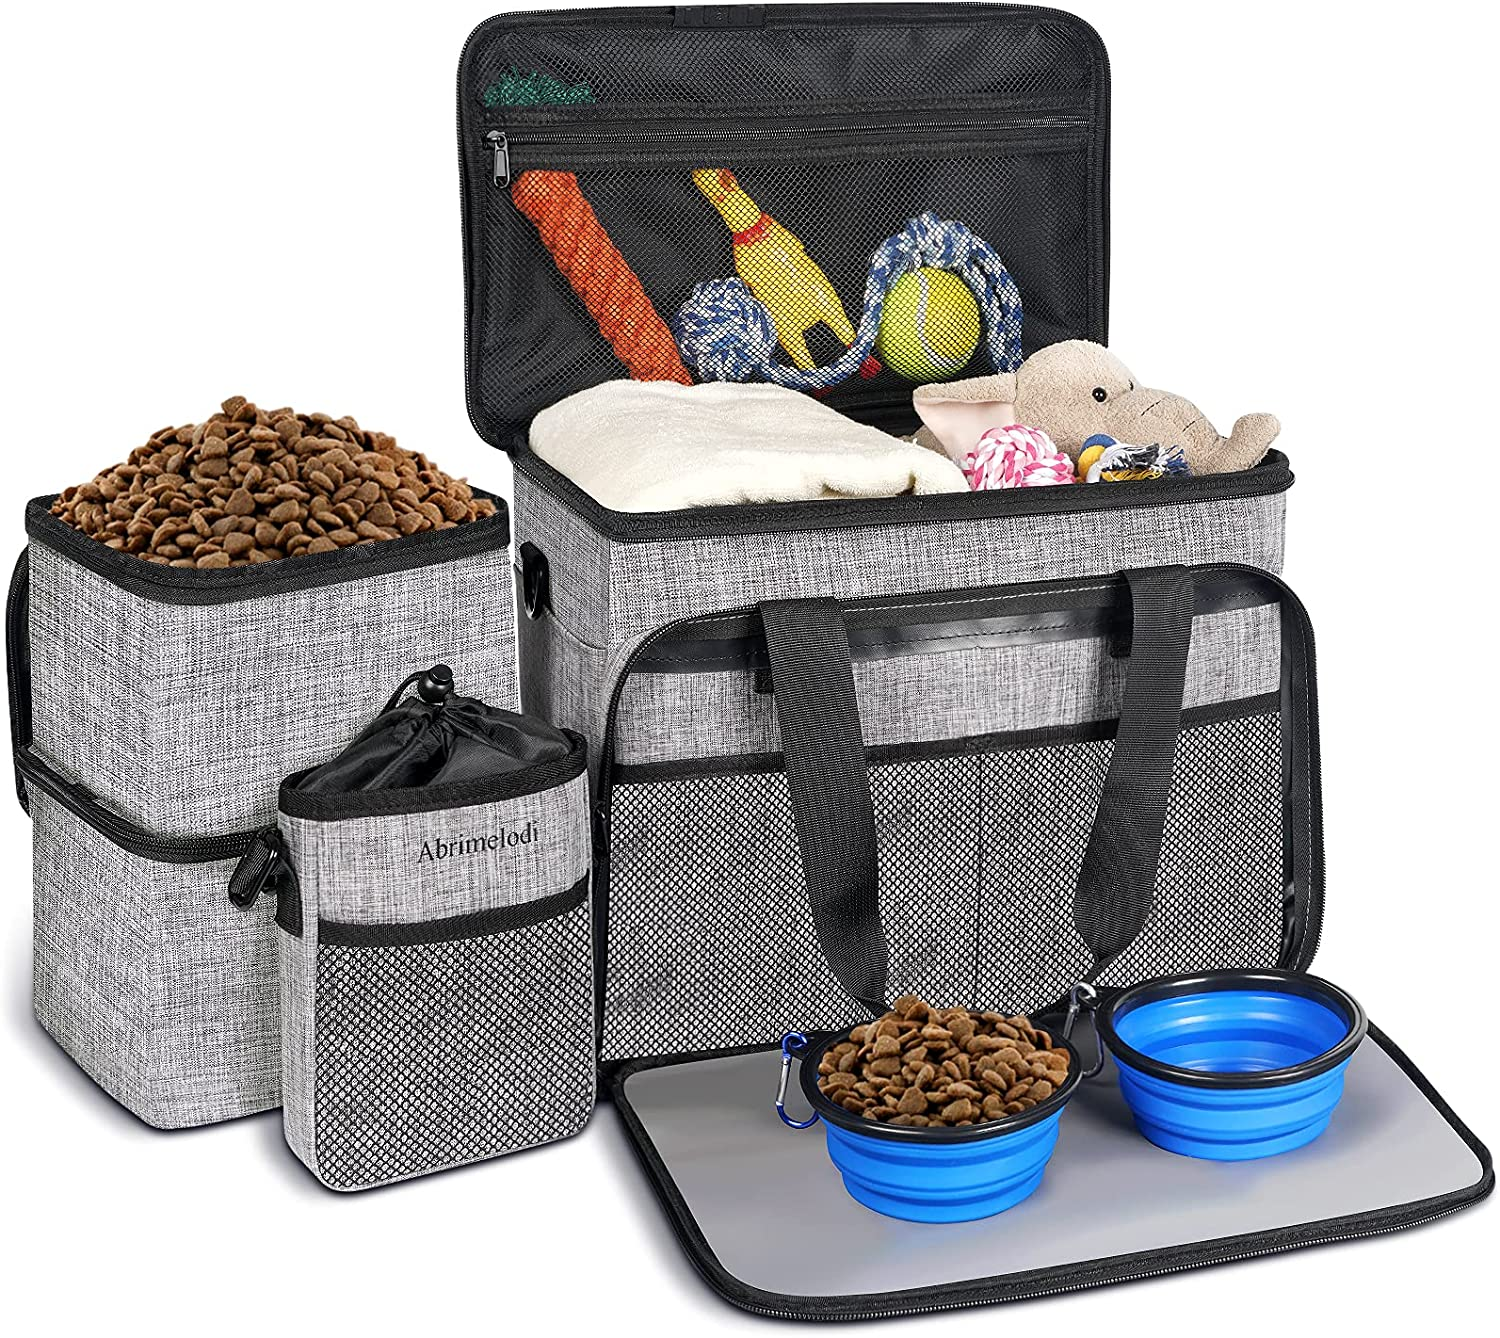 Abrimelodi Dog Travel Bag, Airline Approved Pet Travel Bag Organizer for Dog Supplies, Include 2 Dog Food Containers, 2 Collapsible Dog Bowls and 1 Dog Treat Training Pouch, Dog Tote Organizer, Gray